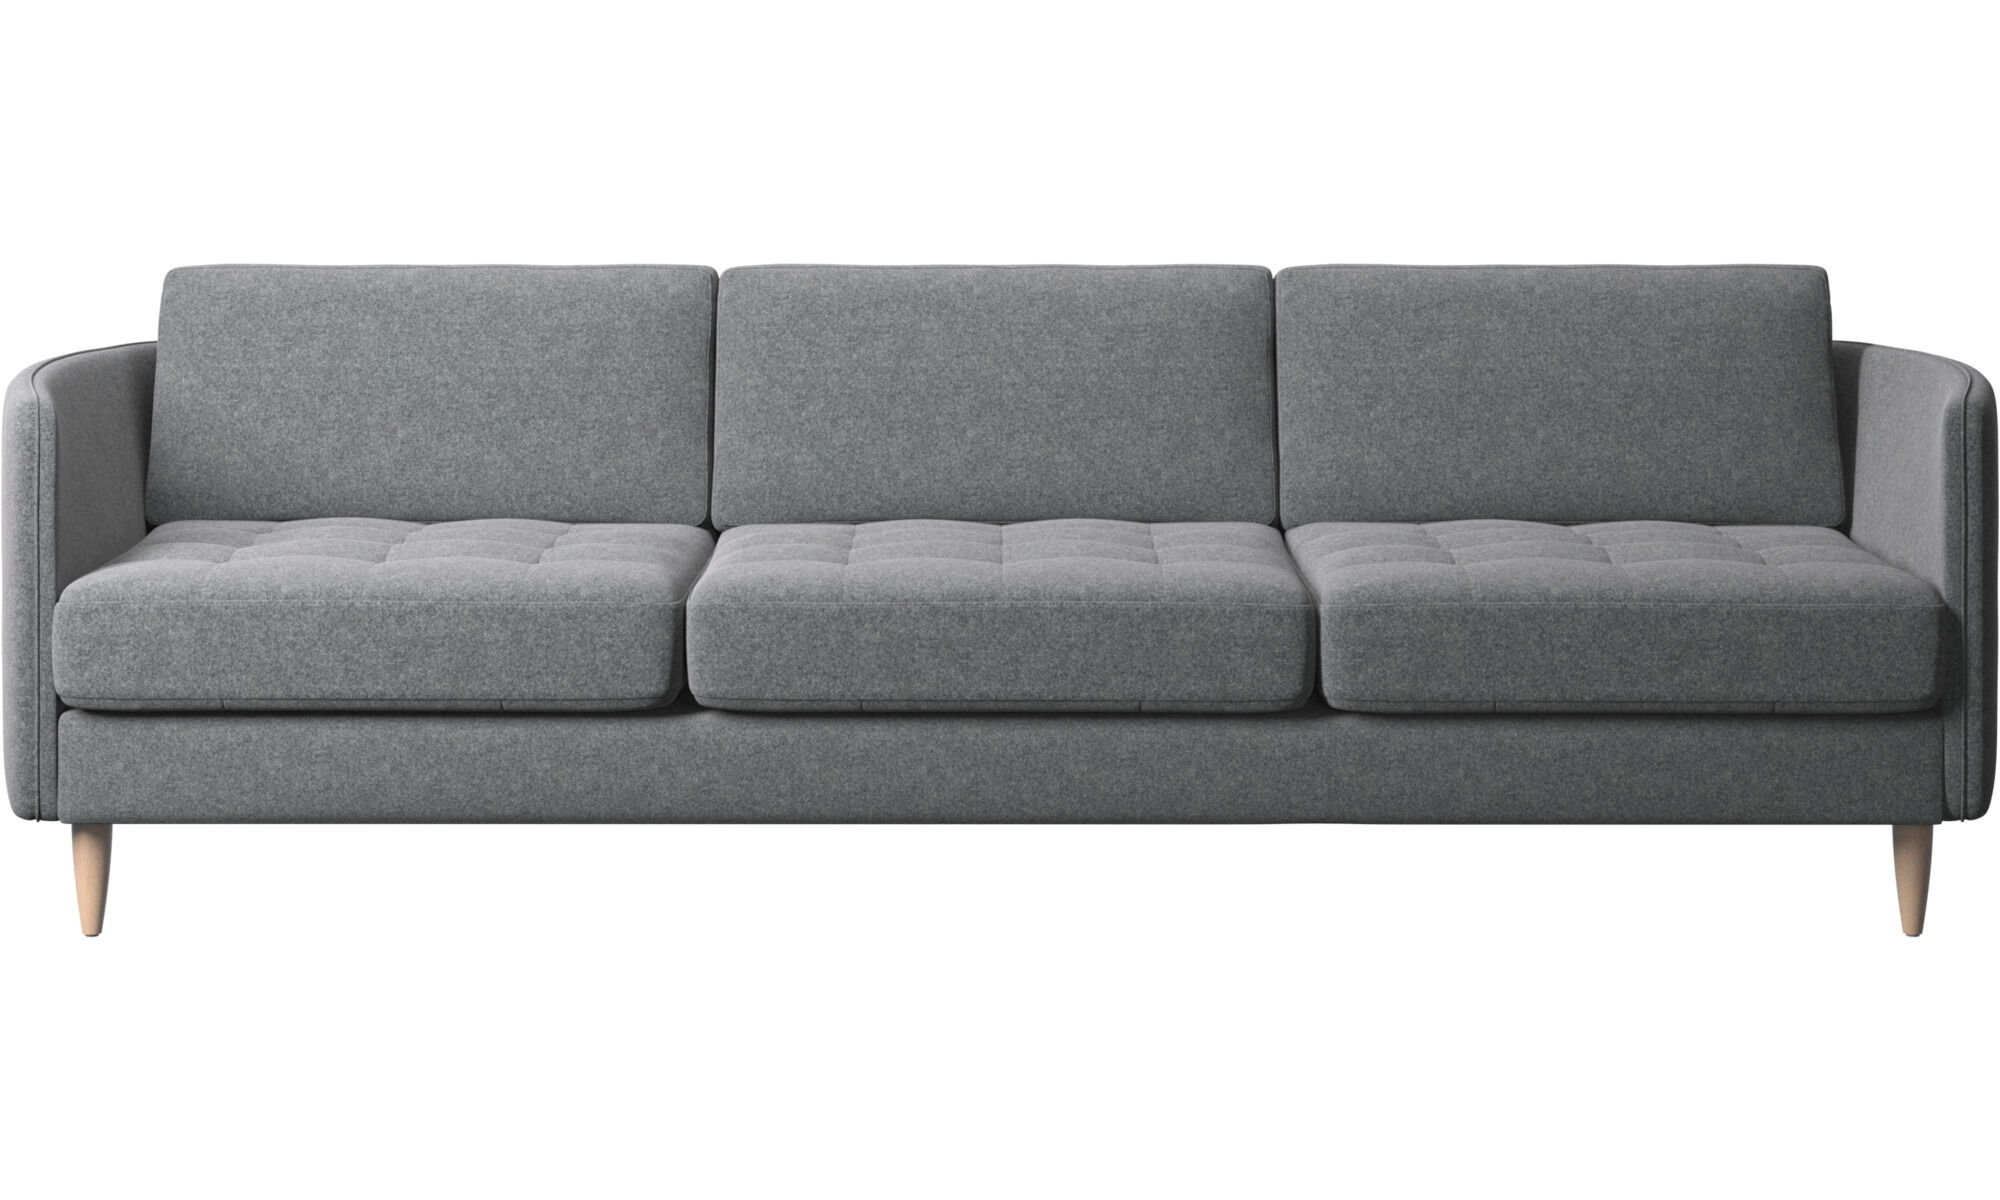 Incroyable 3 Seater Sofas   Osaka Sofa, Tufted Seat   Grey   Fabric ...